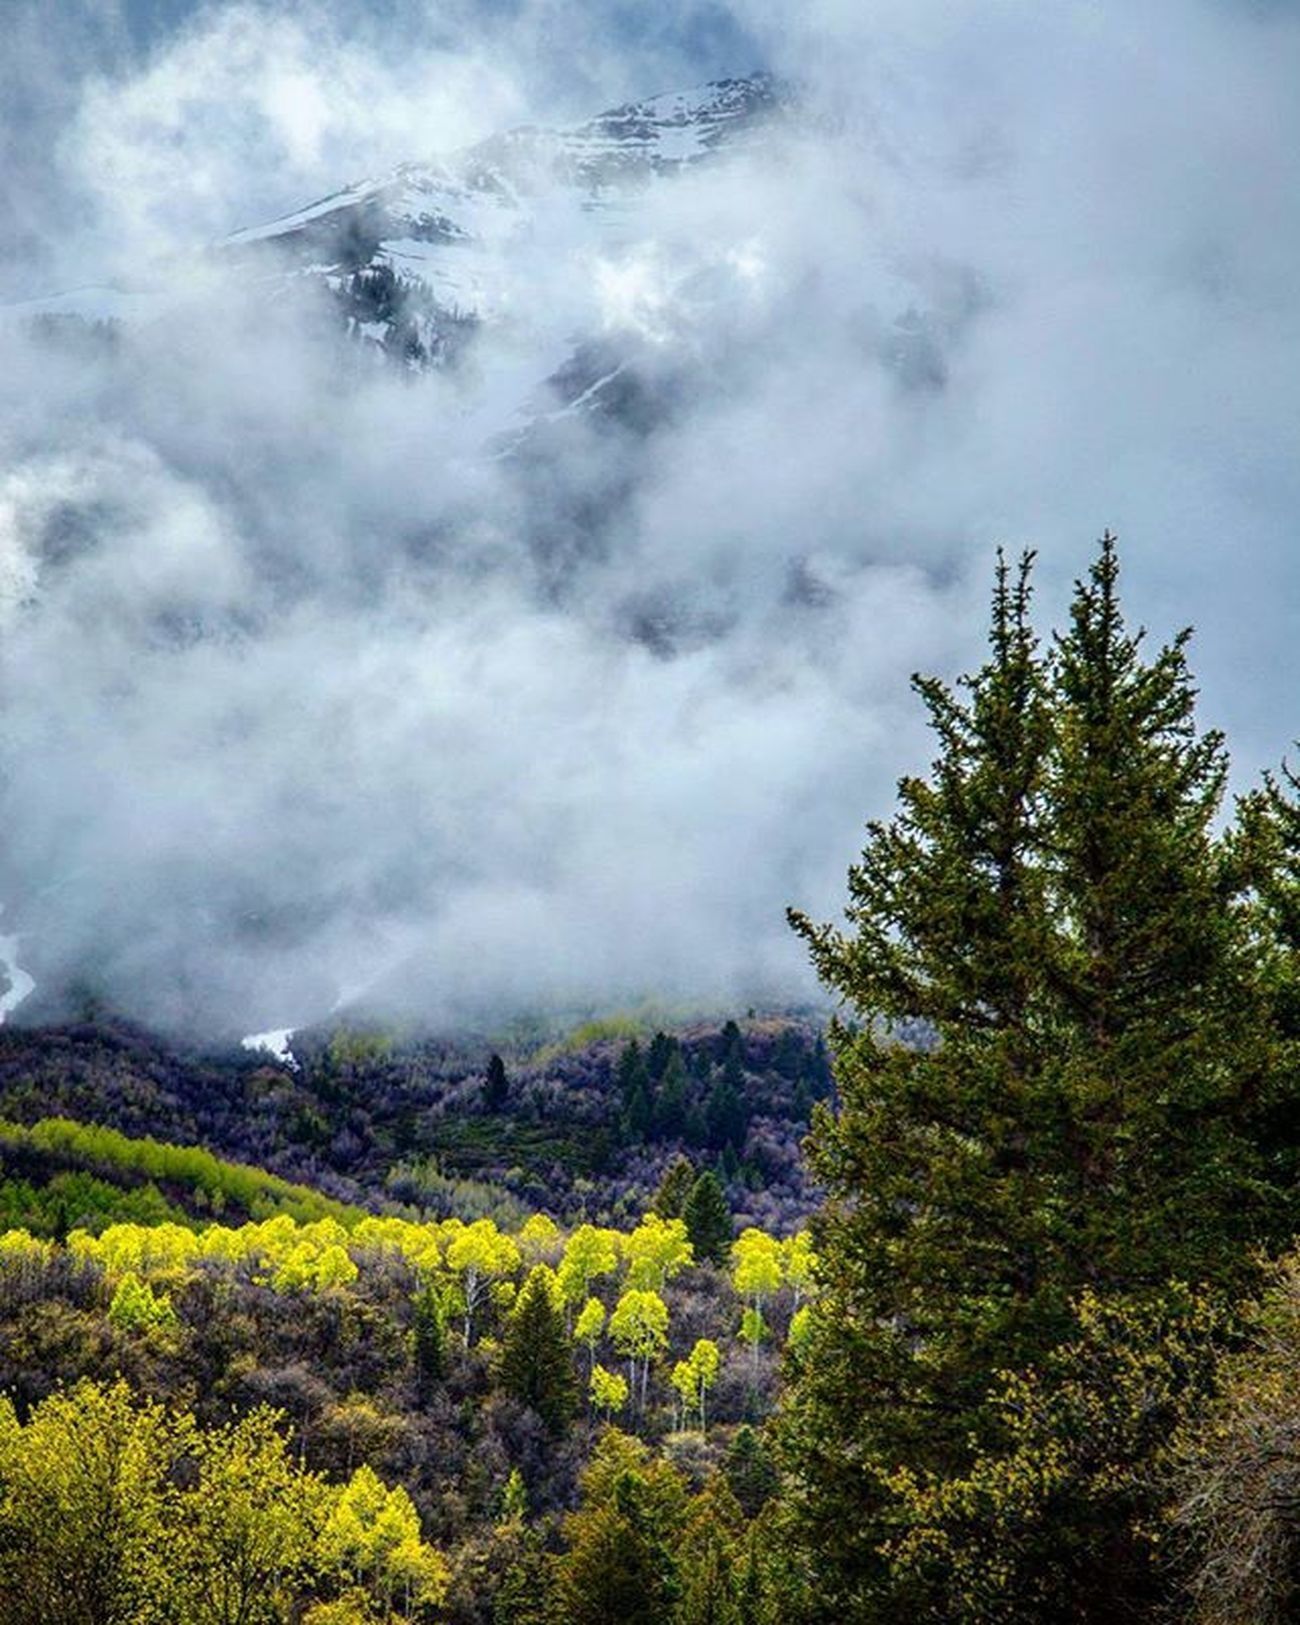 Timpanogos trying to peak through the clouds over the Aspen groves. Timpstagram Timpanogos Mountains Aspen Alpine Alpineloop Visitutah Visitutahvalley Utah